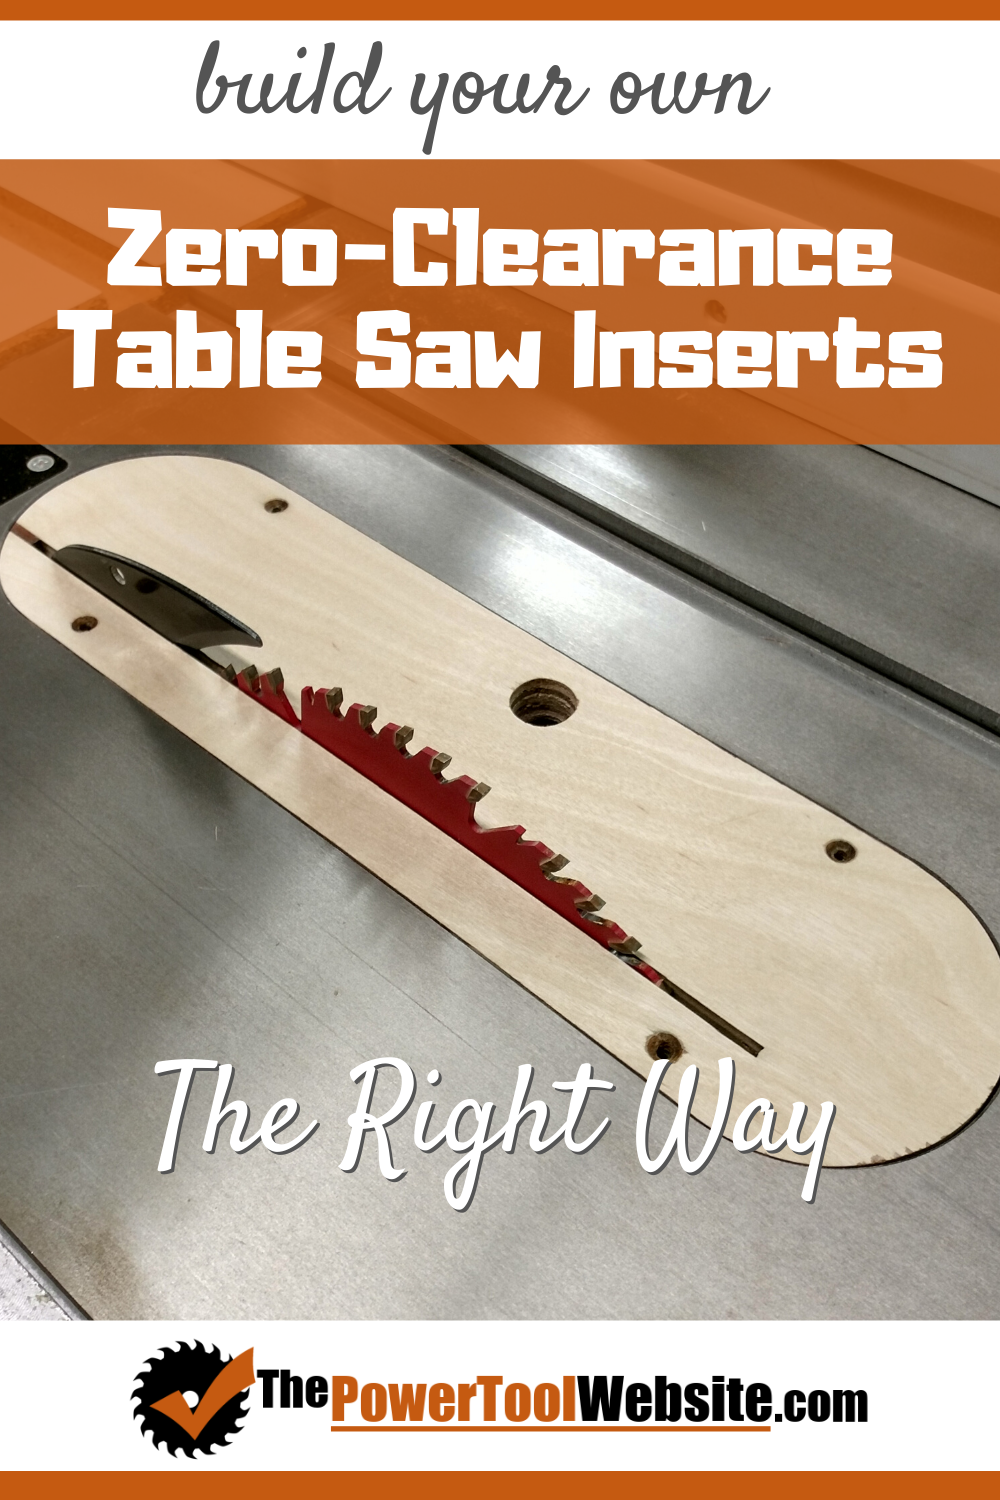 Zero Clearance Table Saw Insert - How To Make One The Right Way